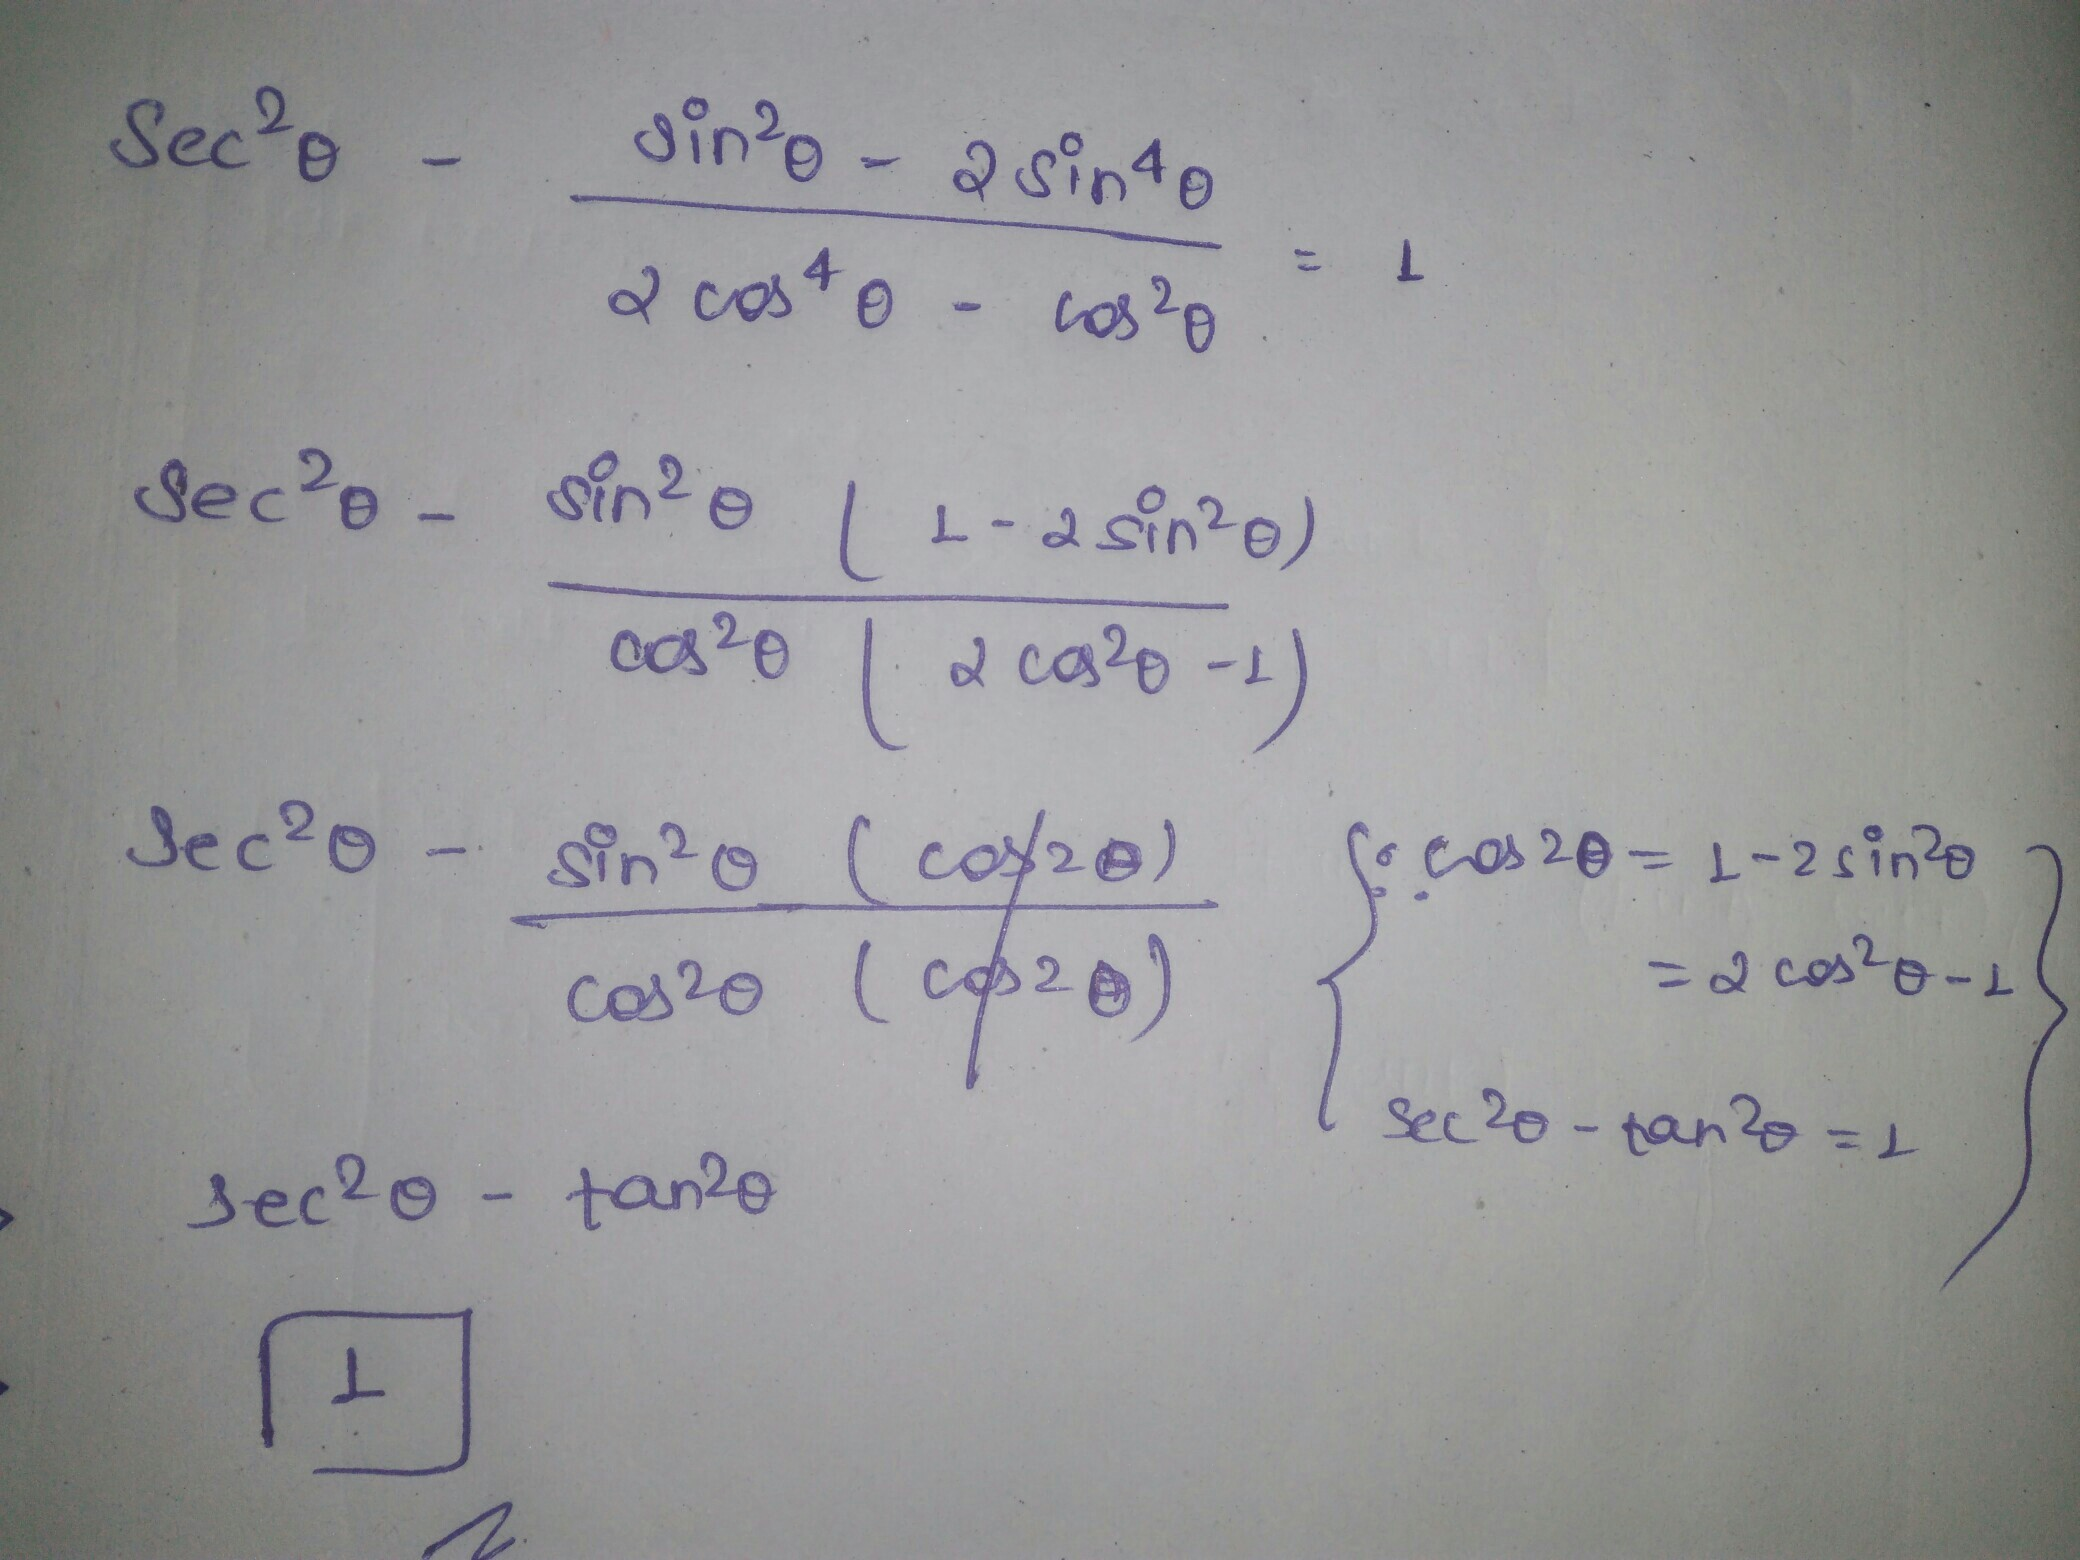 Prove That Sec2 Theta Sin2 Theta 2sin4 Theta 2cos4 Theta 2cos2 Theta 1 Brainly In